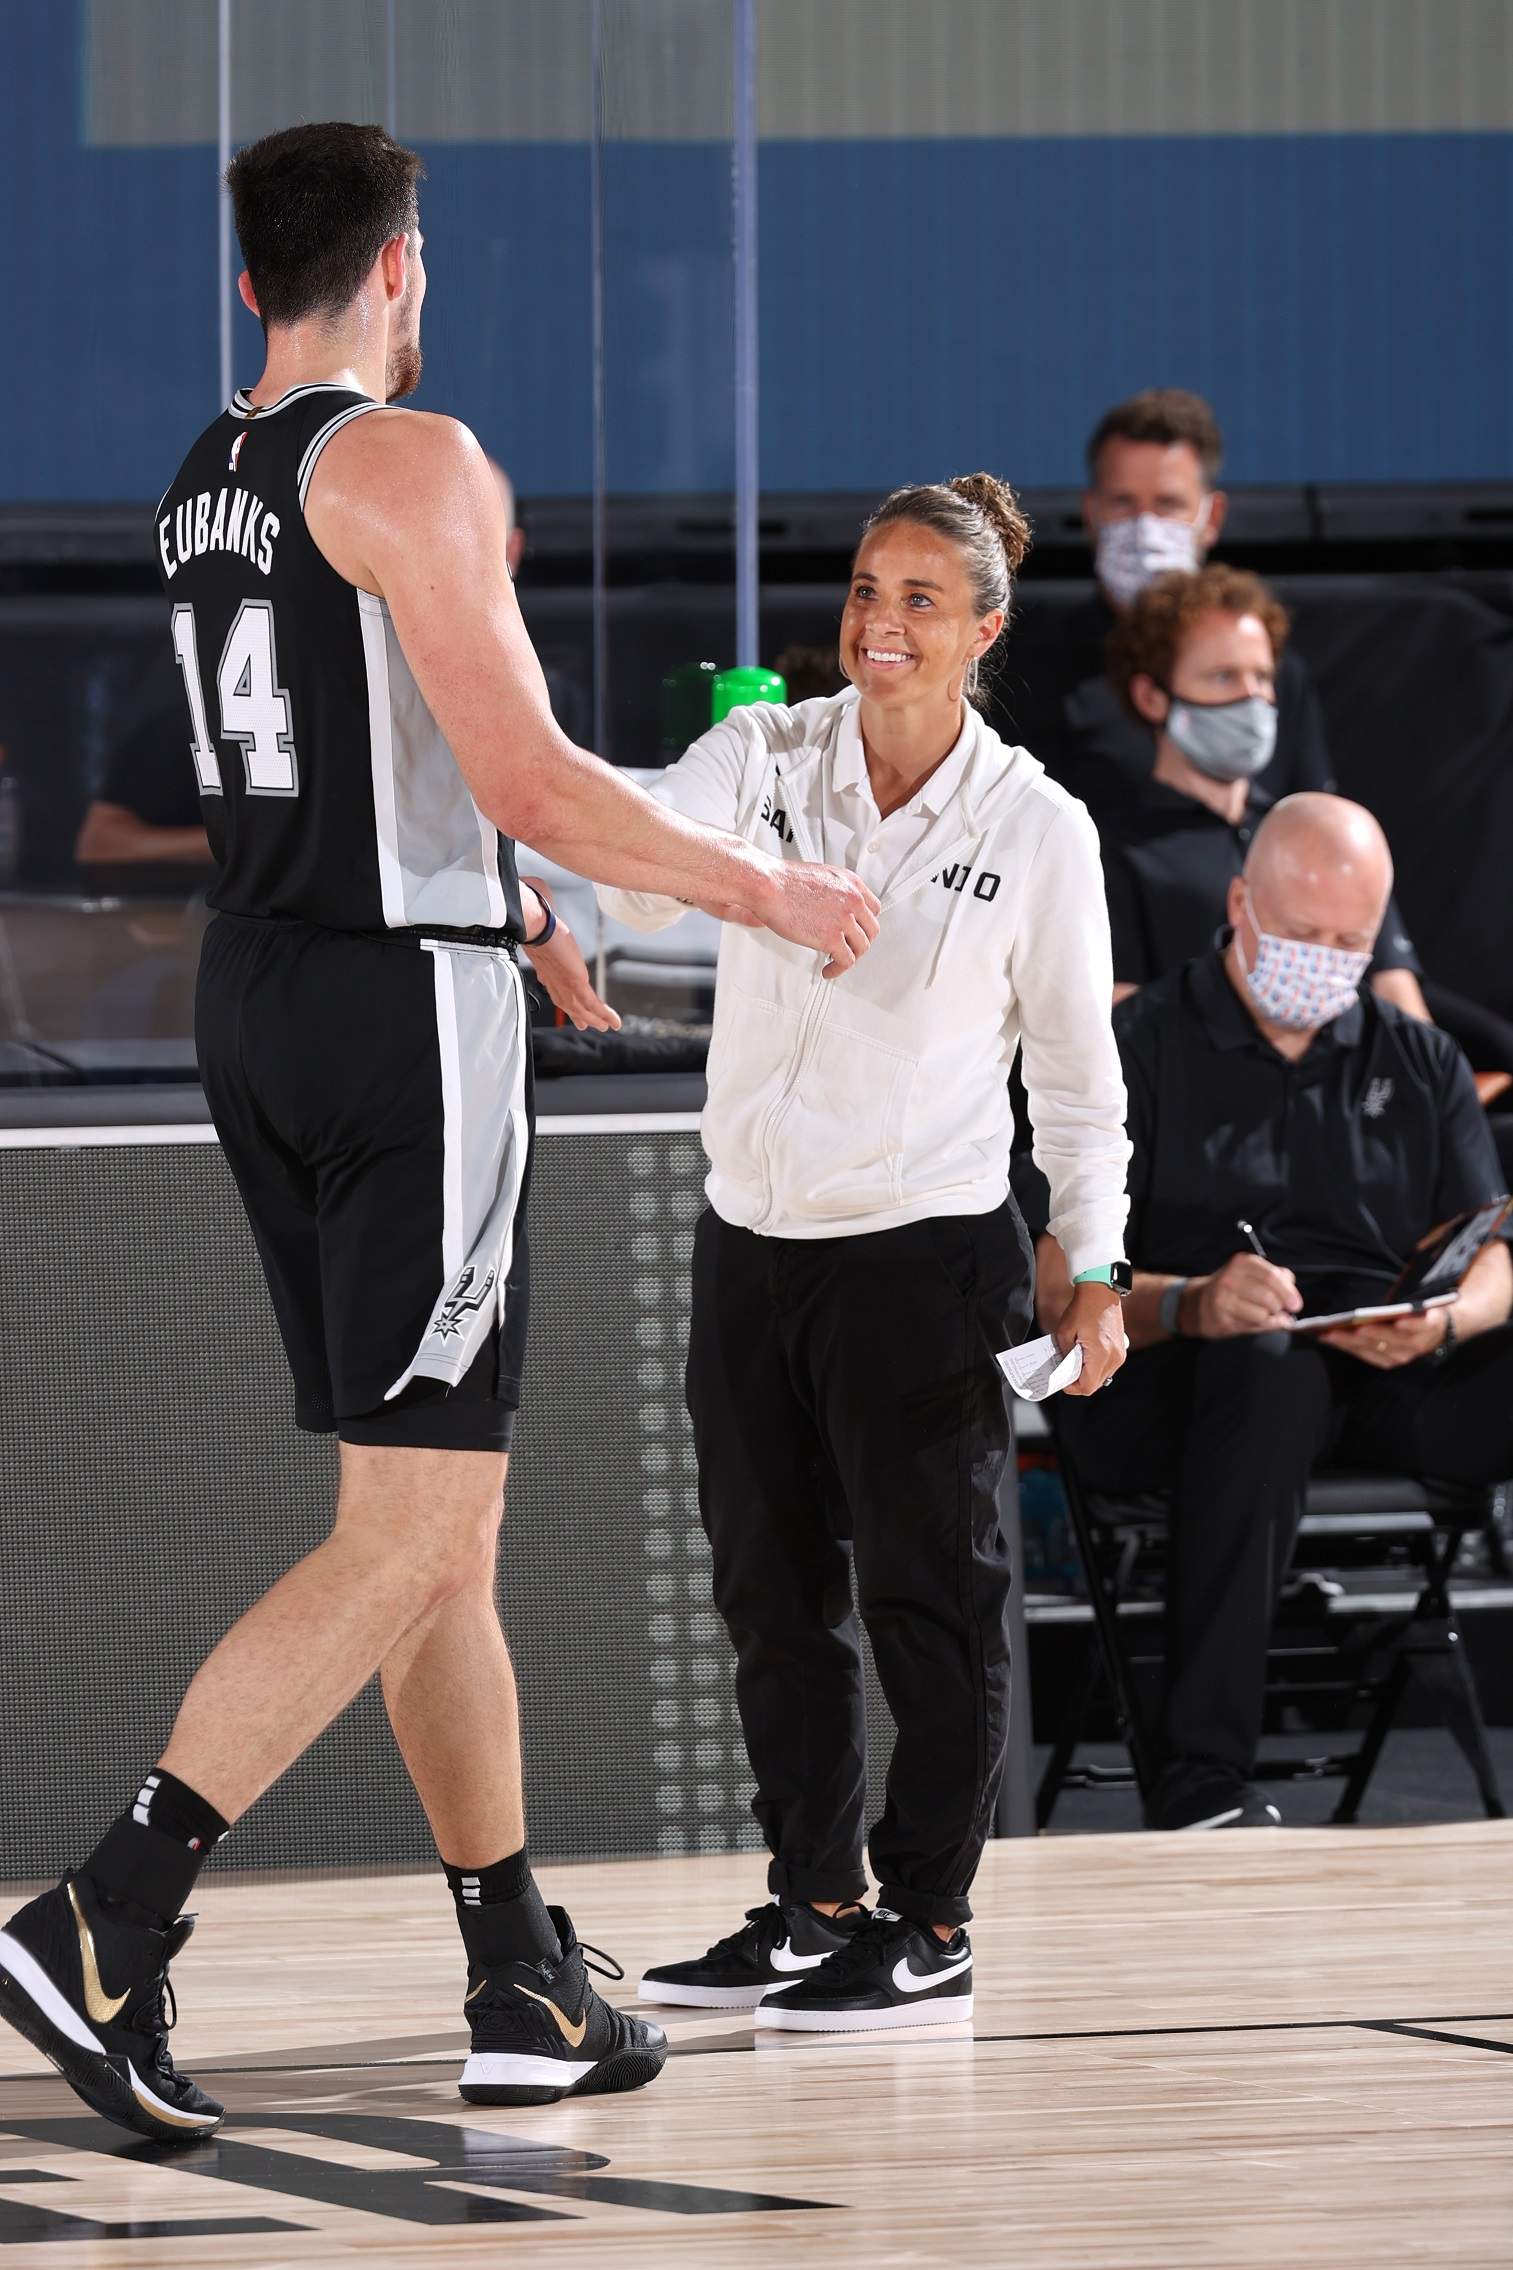 ORLANDO, FL - JULY 23: Drew Eubanks #14 of the San Antonio Spurs high-fives assistant coach Becky Hammon of the San Antonio Spurs during the game on July 23, 2020 at the Visa Athletic Center at ESPN Wide World of Sports Complex in Orlando, Florida. Copyright Notice: Copyright 2020 NBAE (Photo by David Sherman/NBAE via Getty Images)